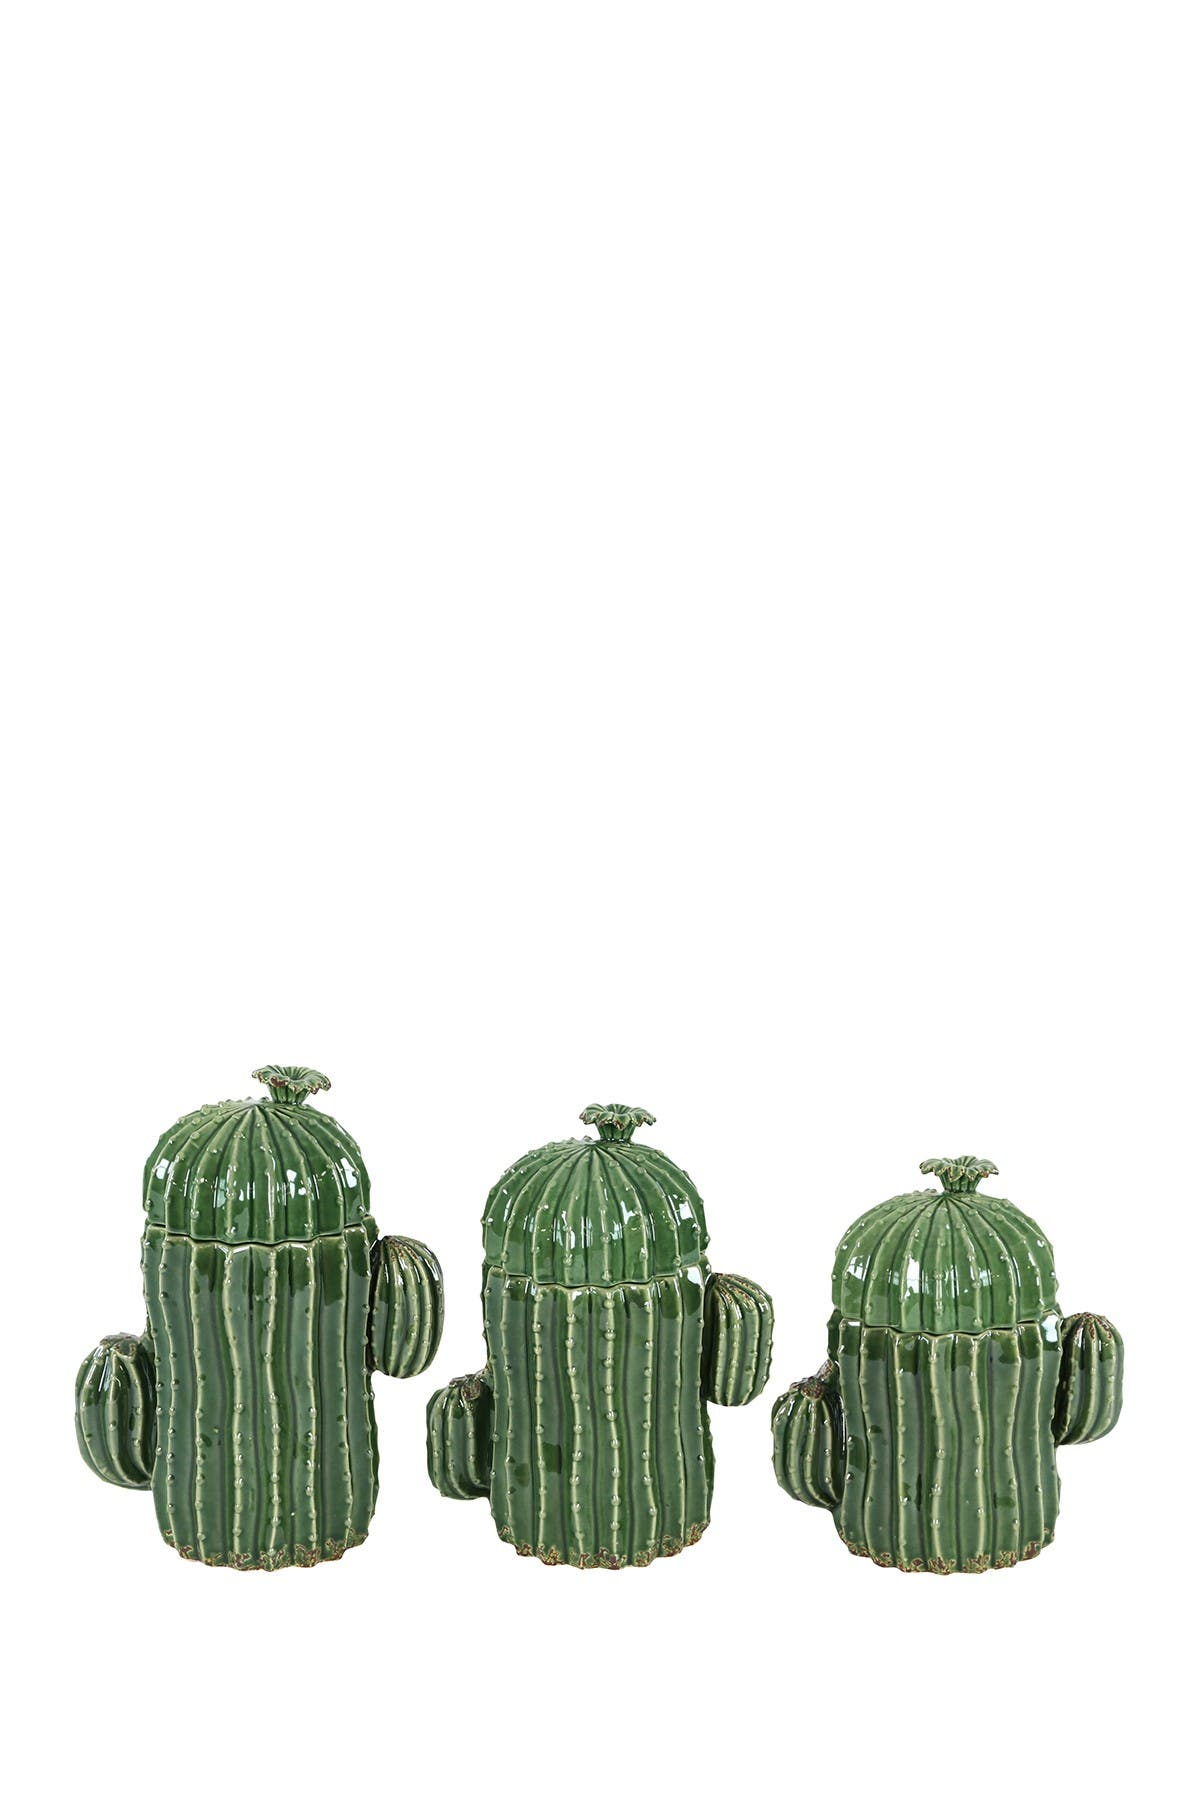 Willow Row Large Ceramic Green Cactus Pottery Decorative Jars with Lids - Set of 3 at Nordstrom Rack